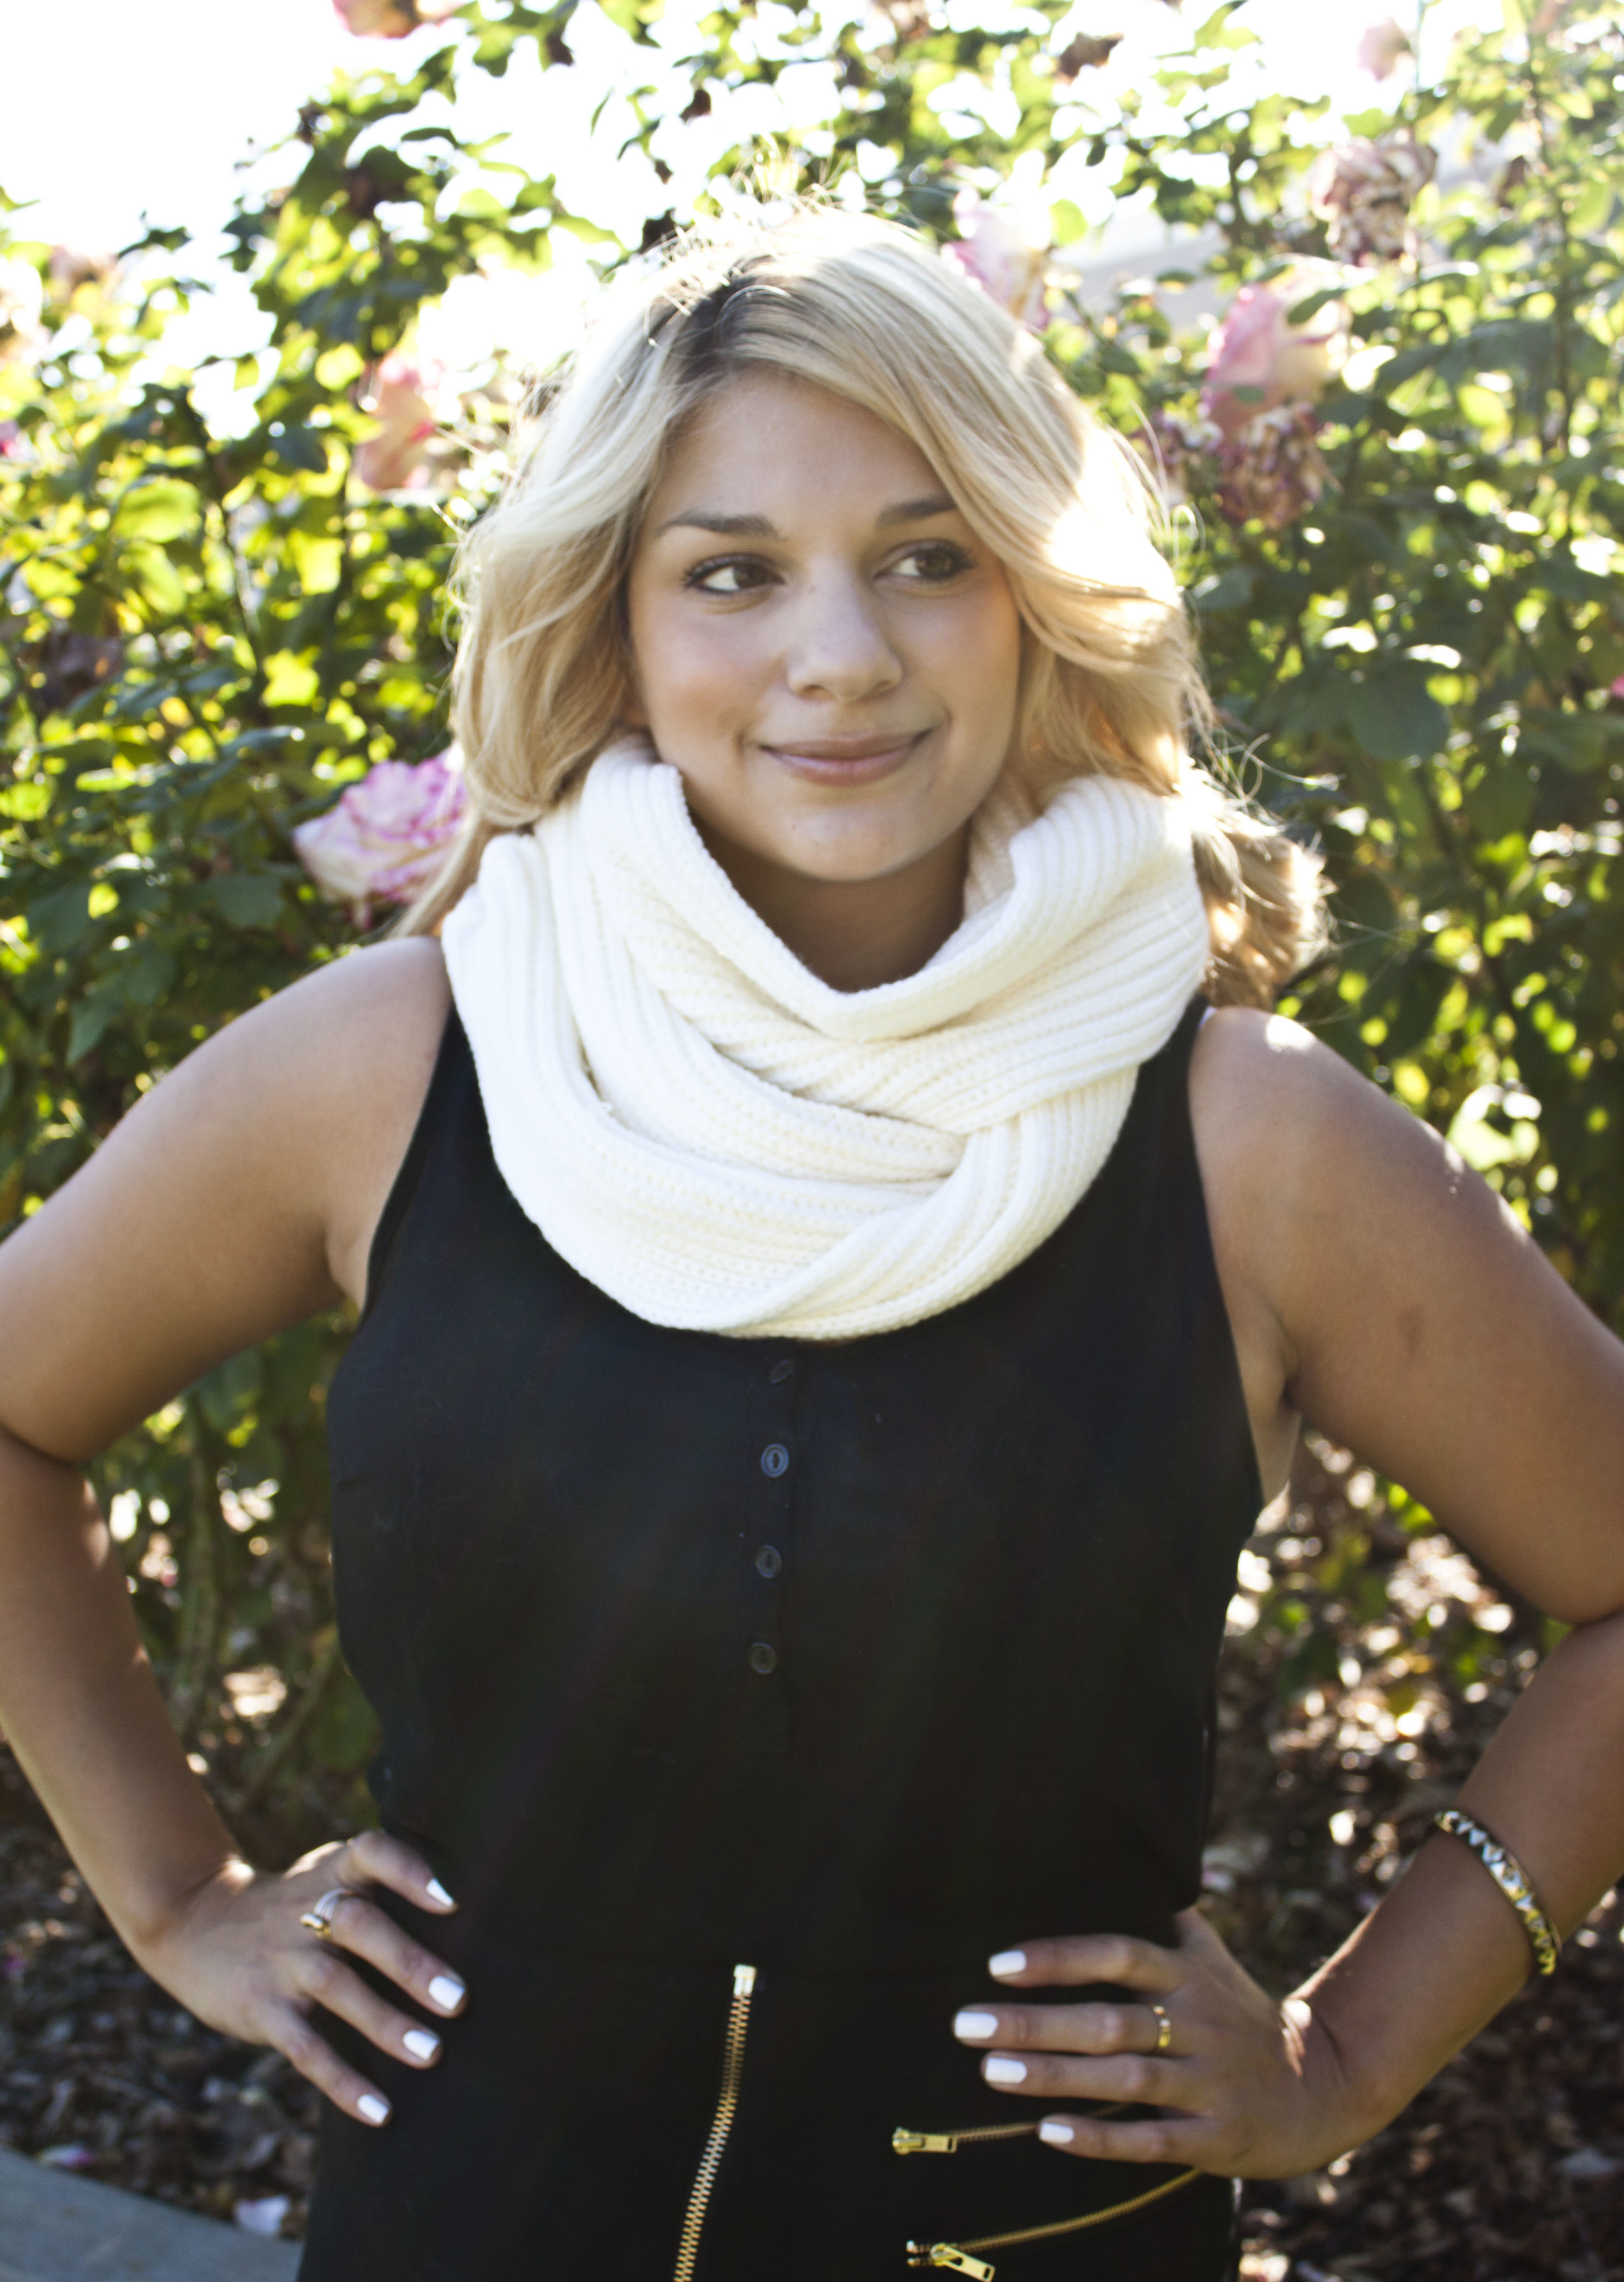 My Mixit shaker scarf is the perfect accessory for any occasion!